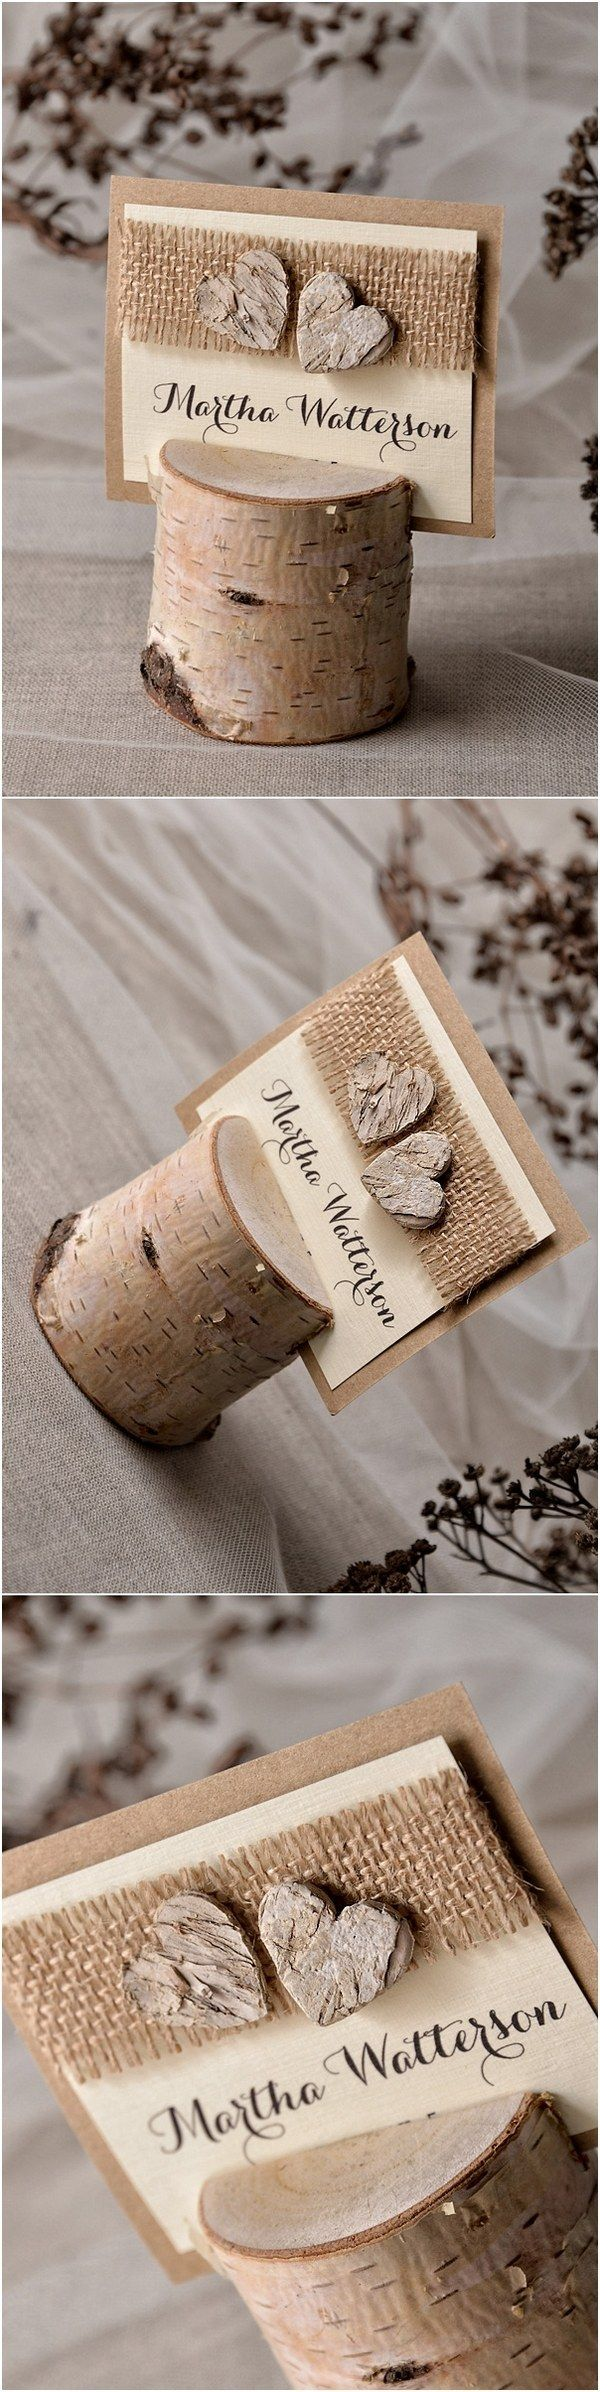 wedding table name card size%0A Rustic country burlap and birch real wood wedding place cards   countrywedding  rusticwedding  dpf